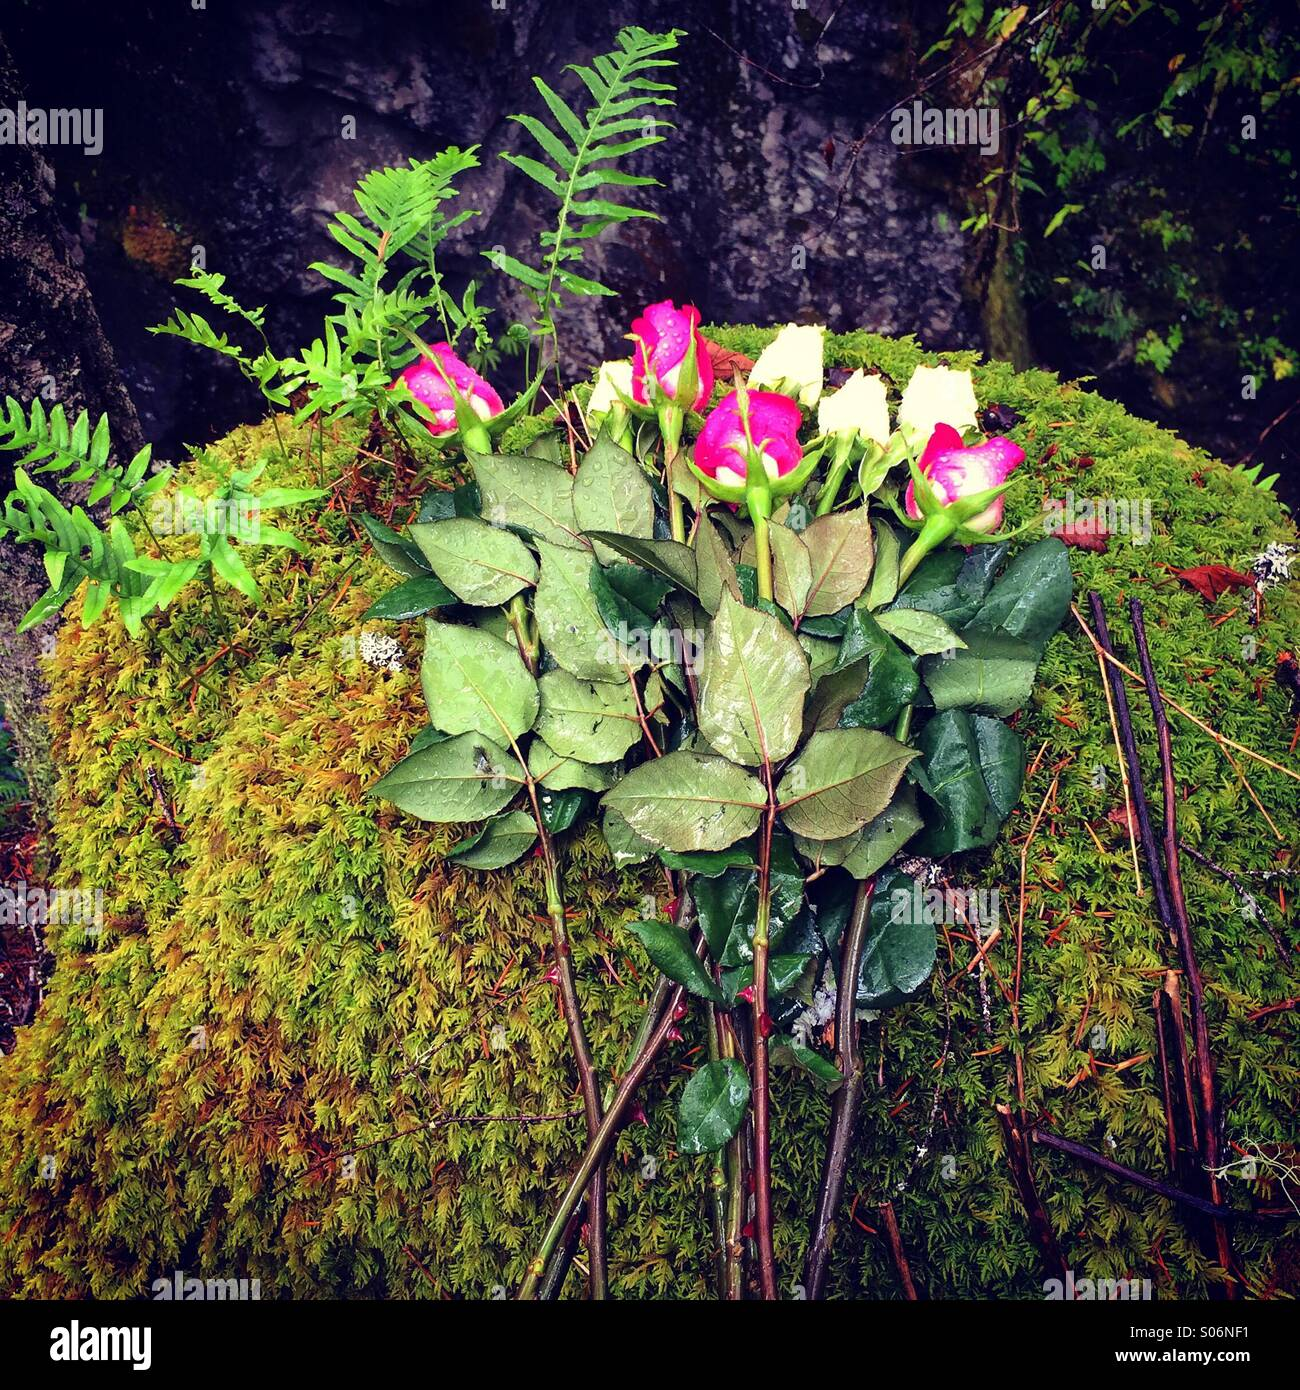 Memorial to accidental death, Little Qualicum Falls Provincial Park, Vancouver Island, Canada - Stock Image